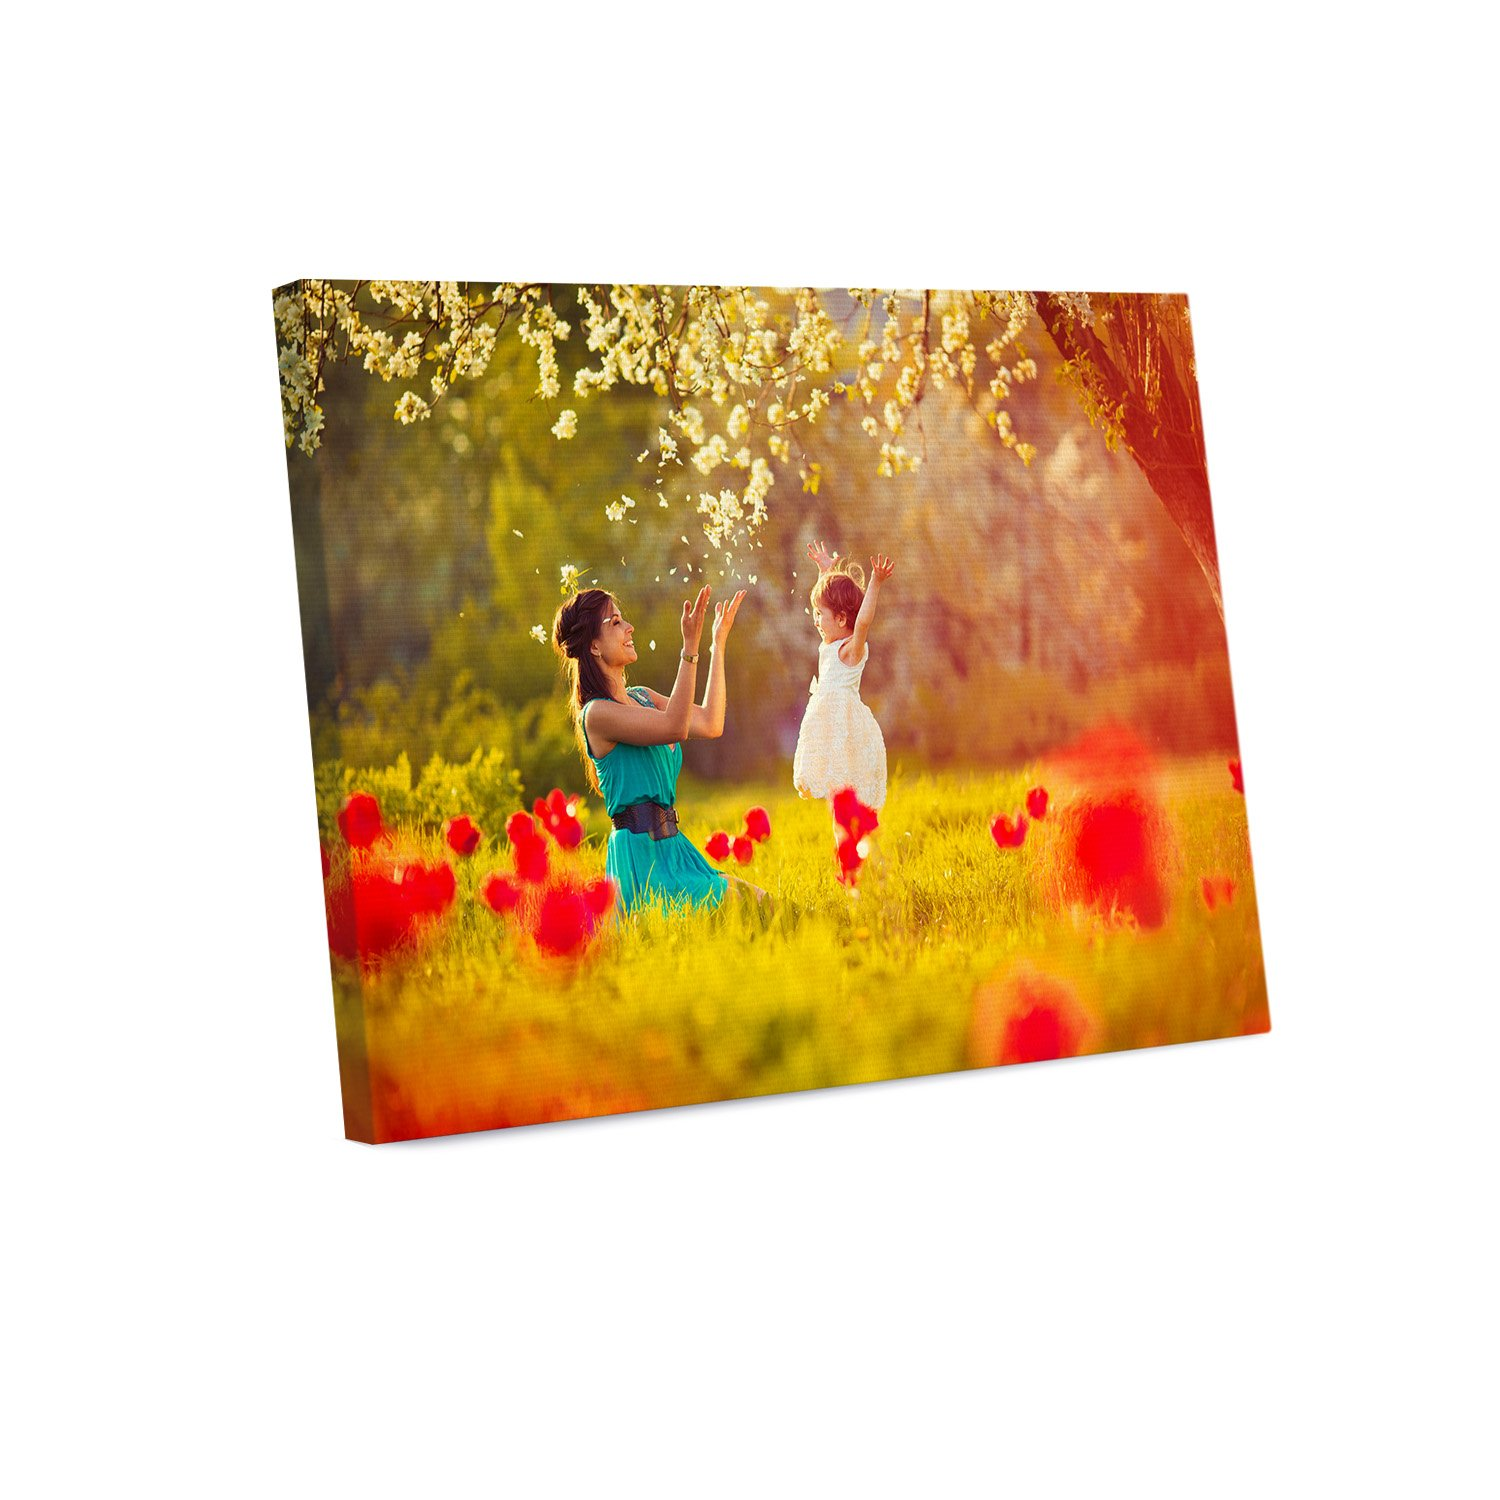 Picture Wall Art Your Photo or Art on Custom Canvas Print 14 x 11 Stretched over Wooden Frame